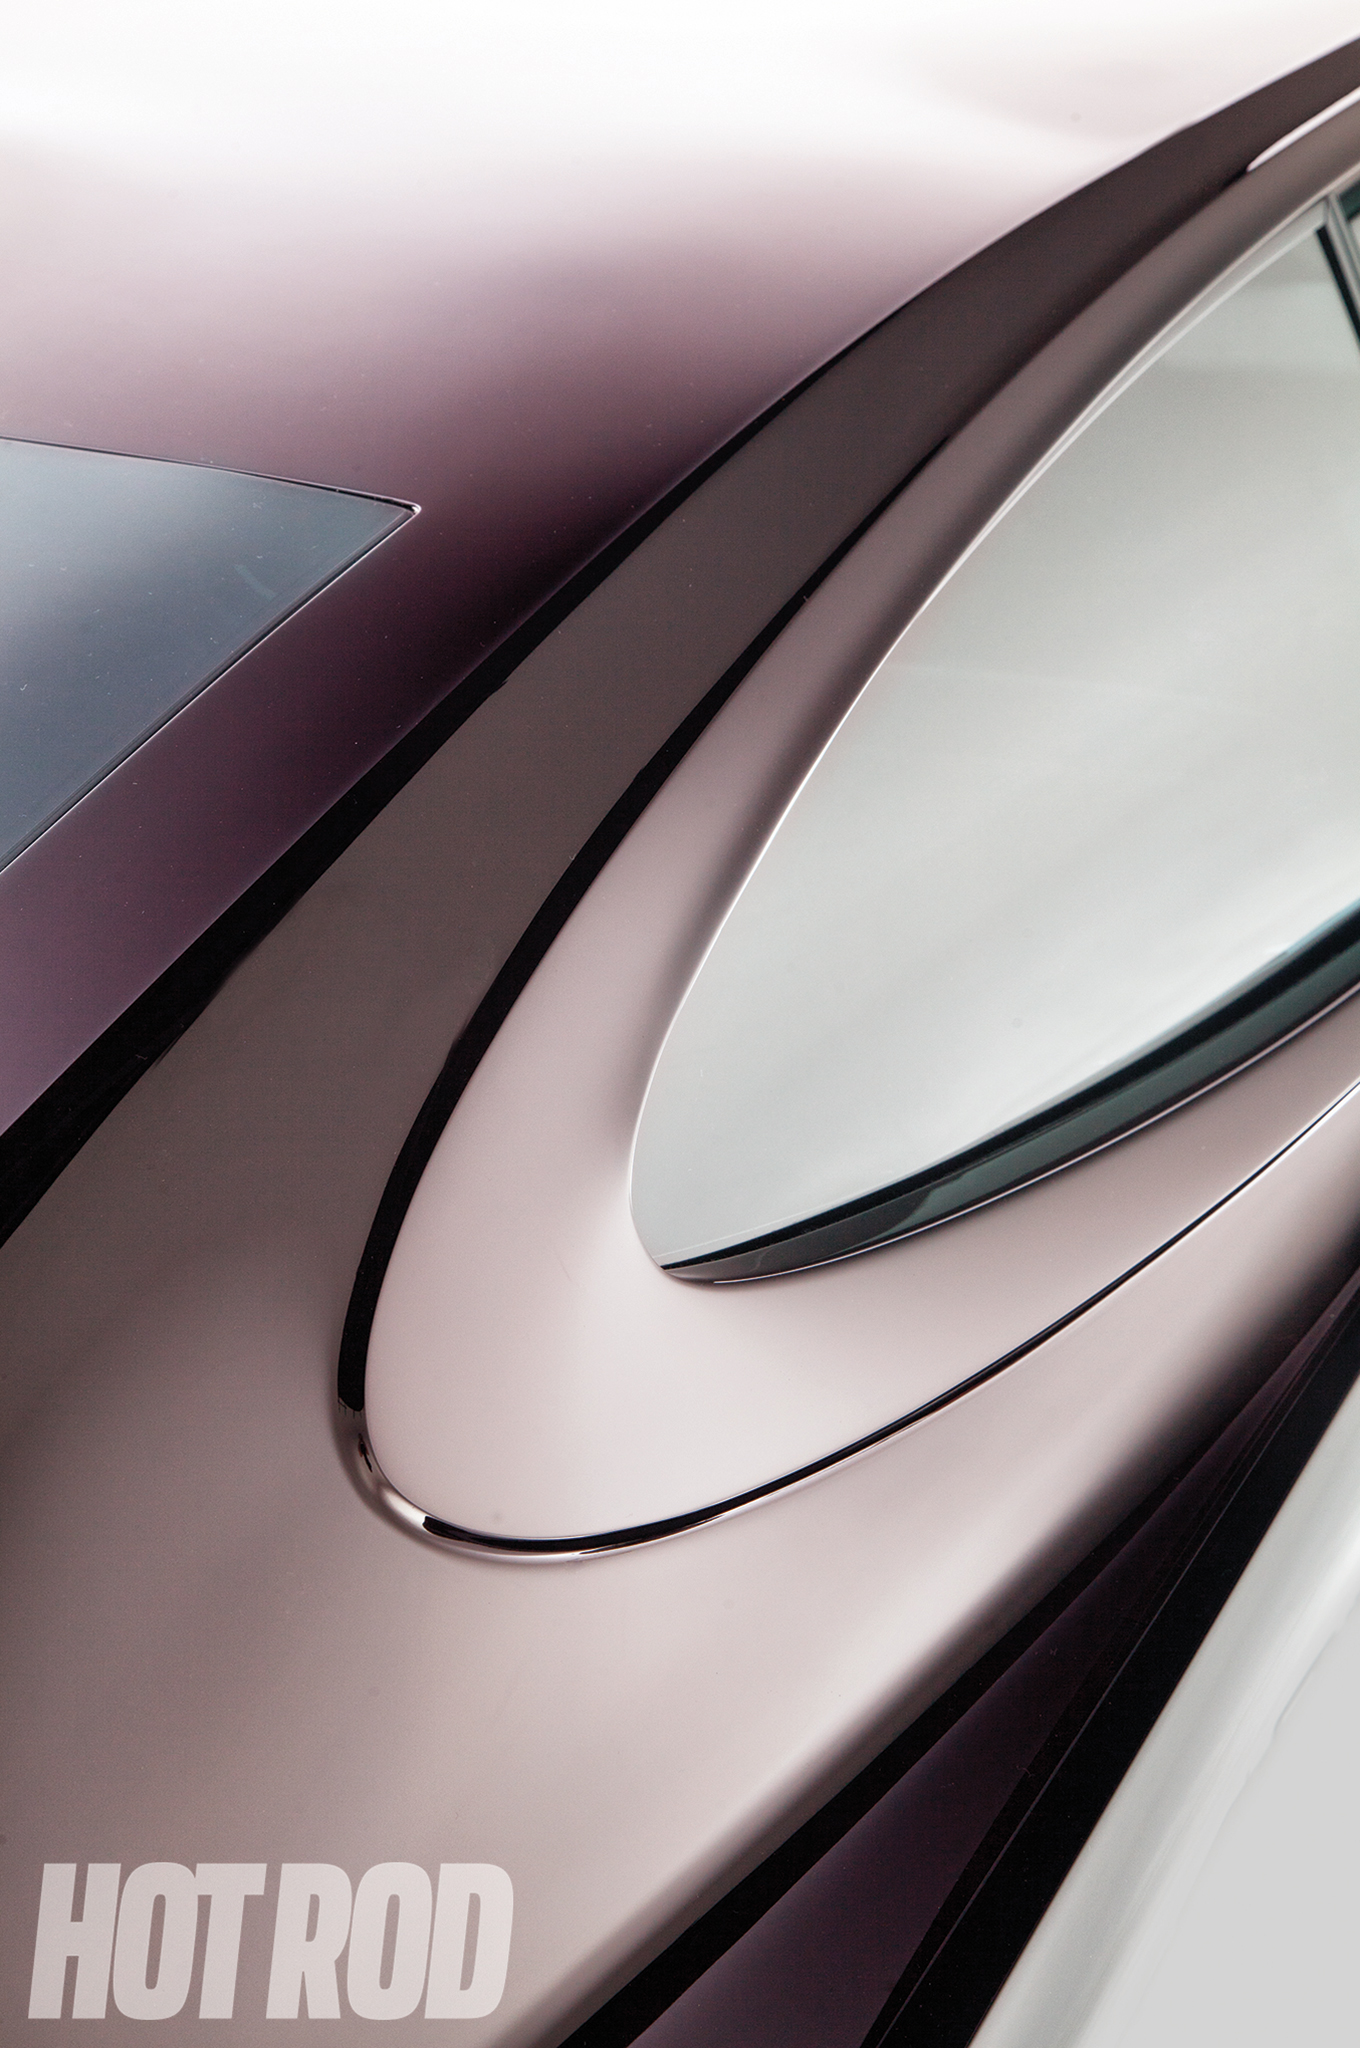 This bodyline is factory AMC, although it would have been covered by stainless trim. Bruhn removed the trim and allowed the bodyline to be a focal point.